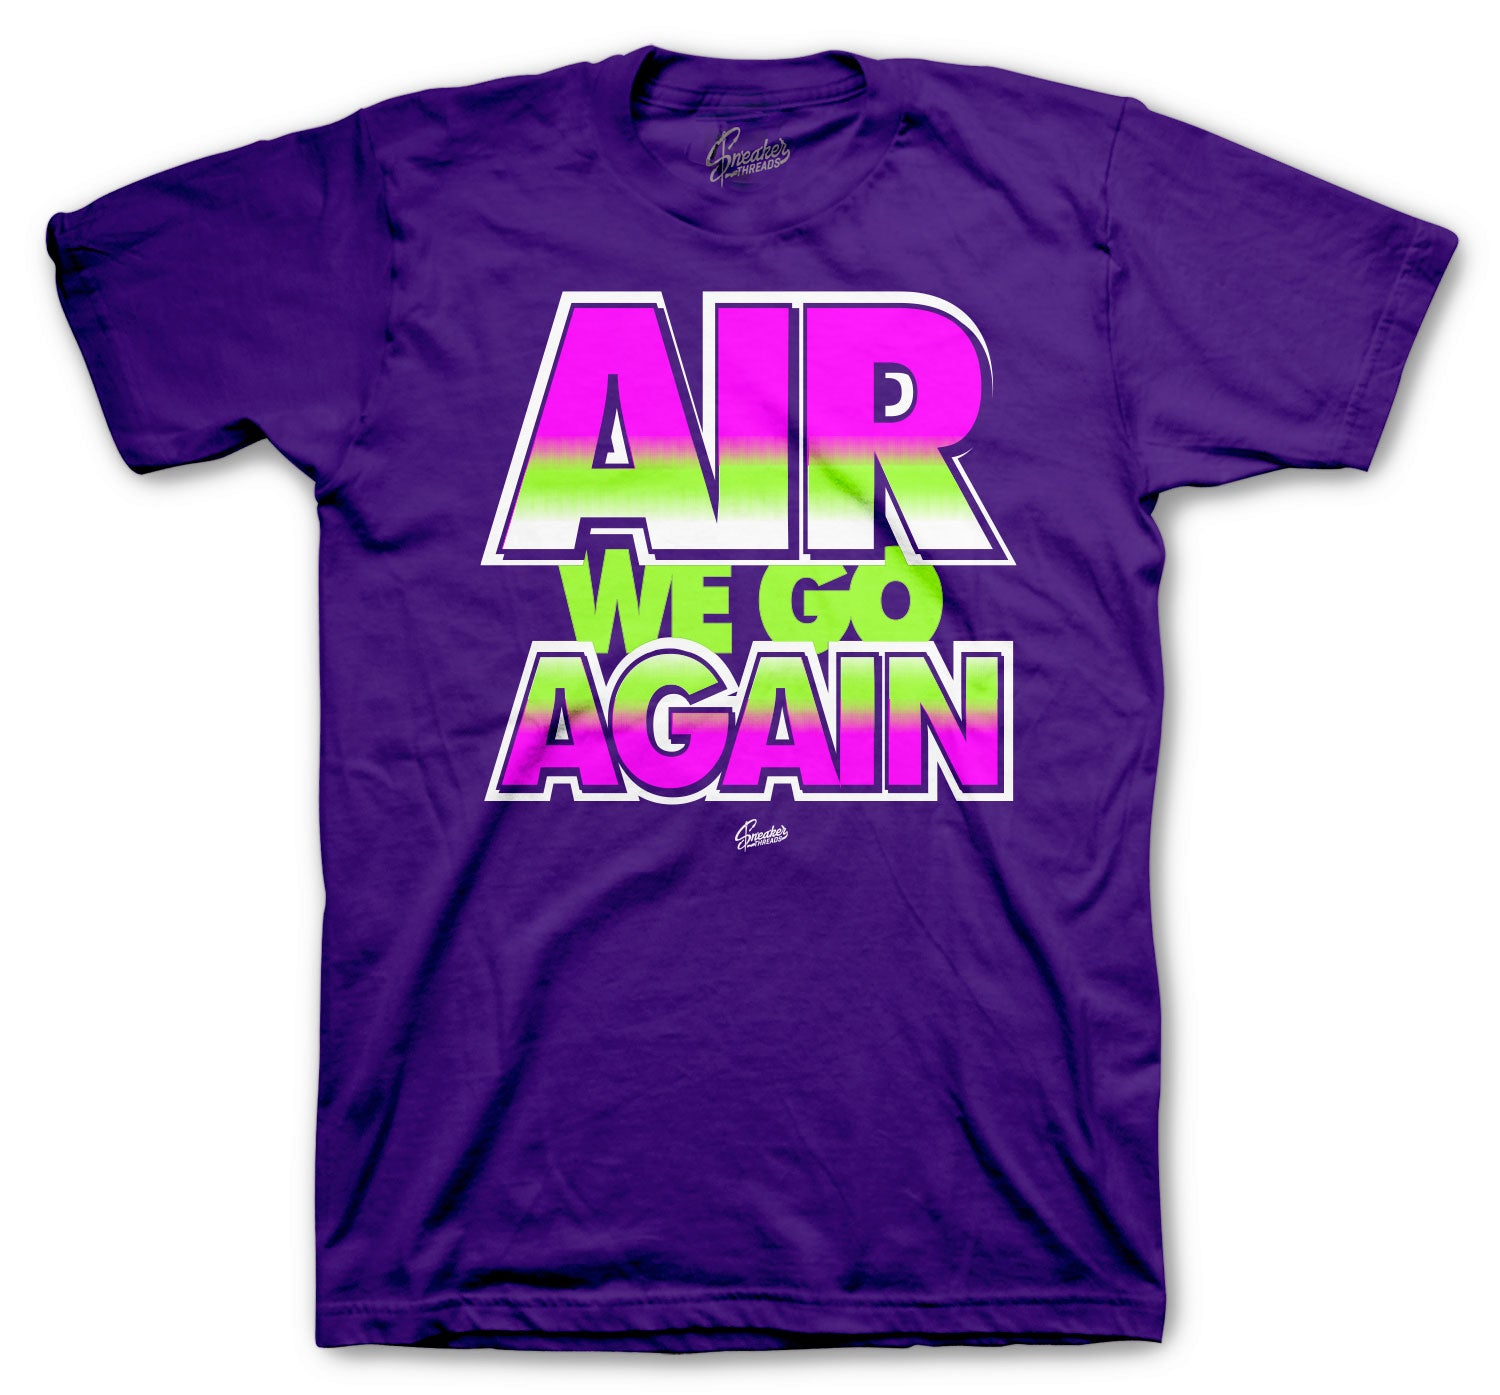 Jordan 5 Bel Air sneaker collection matching with mens shirts